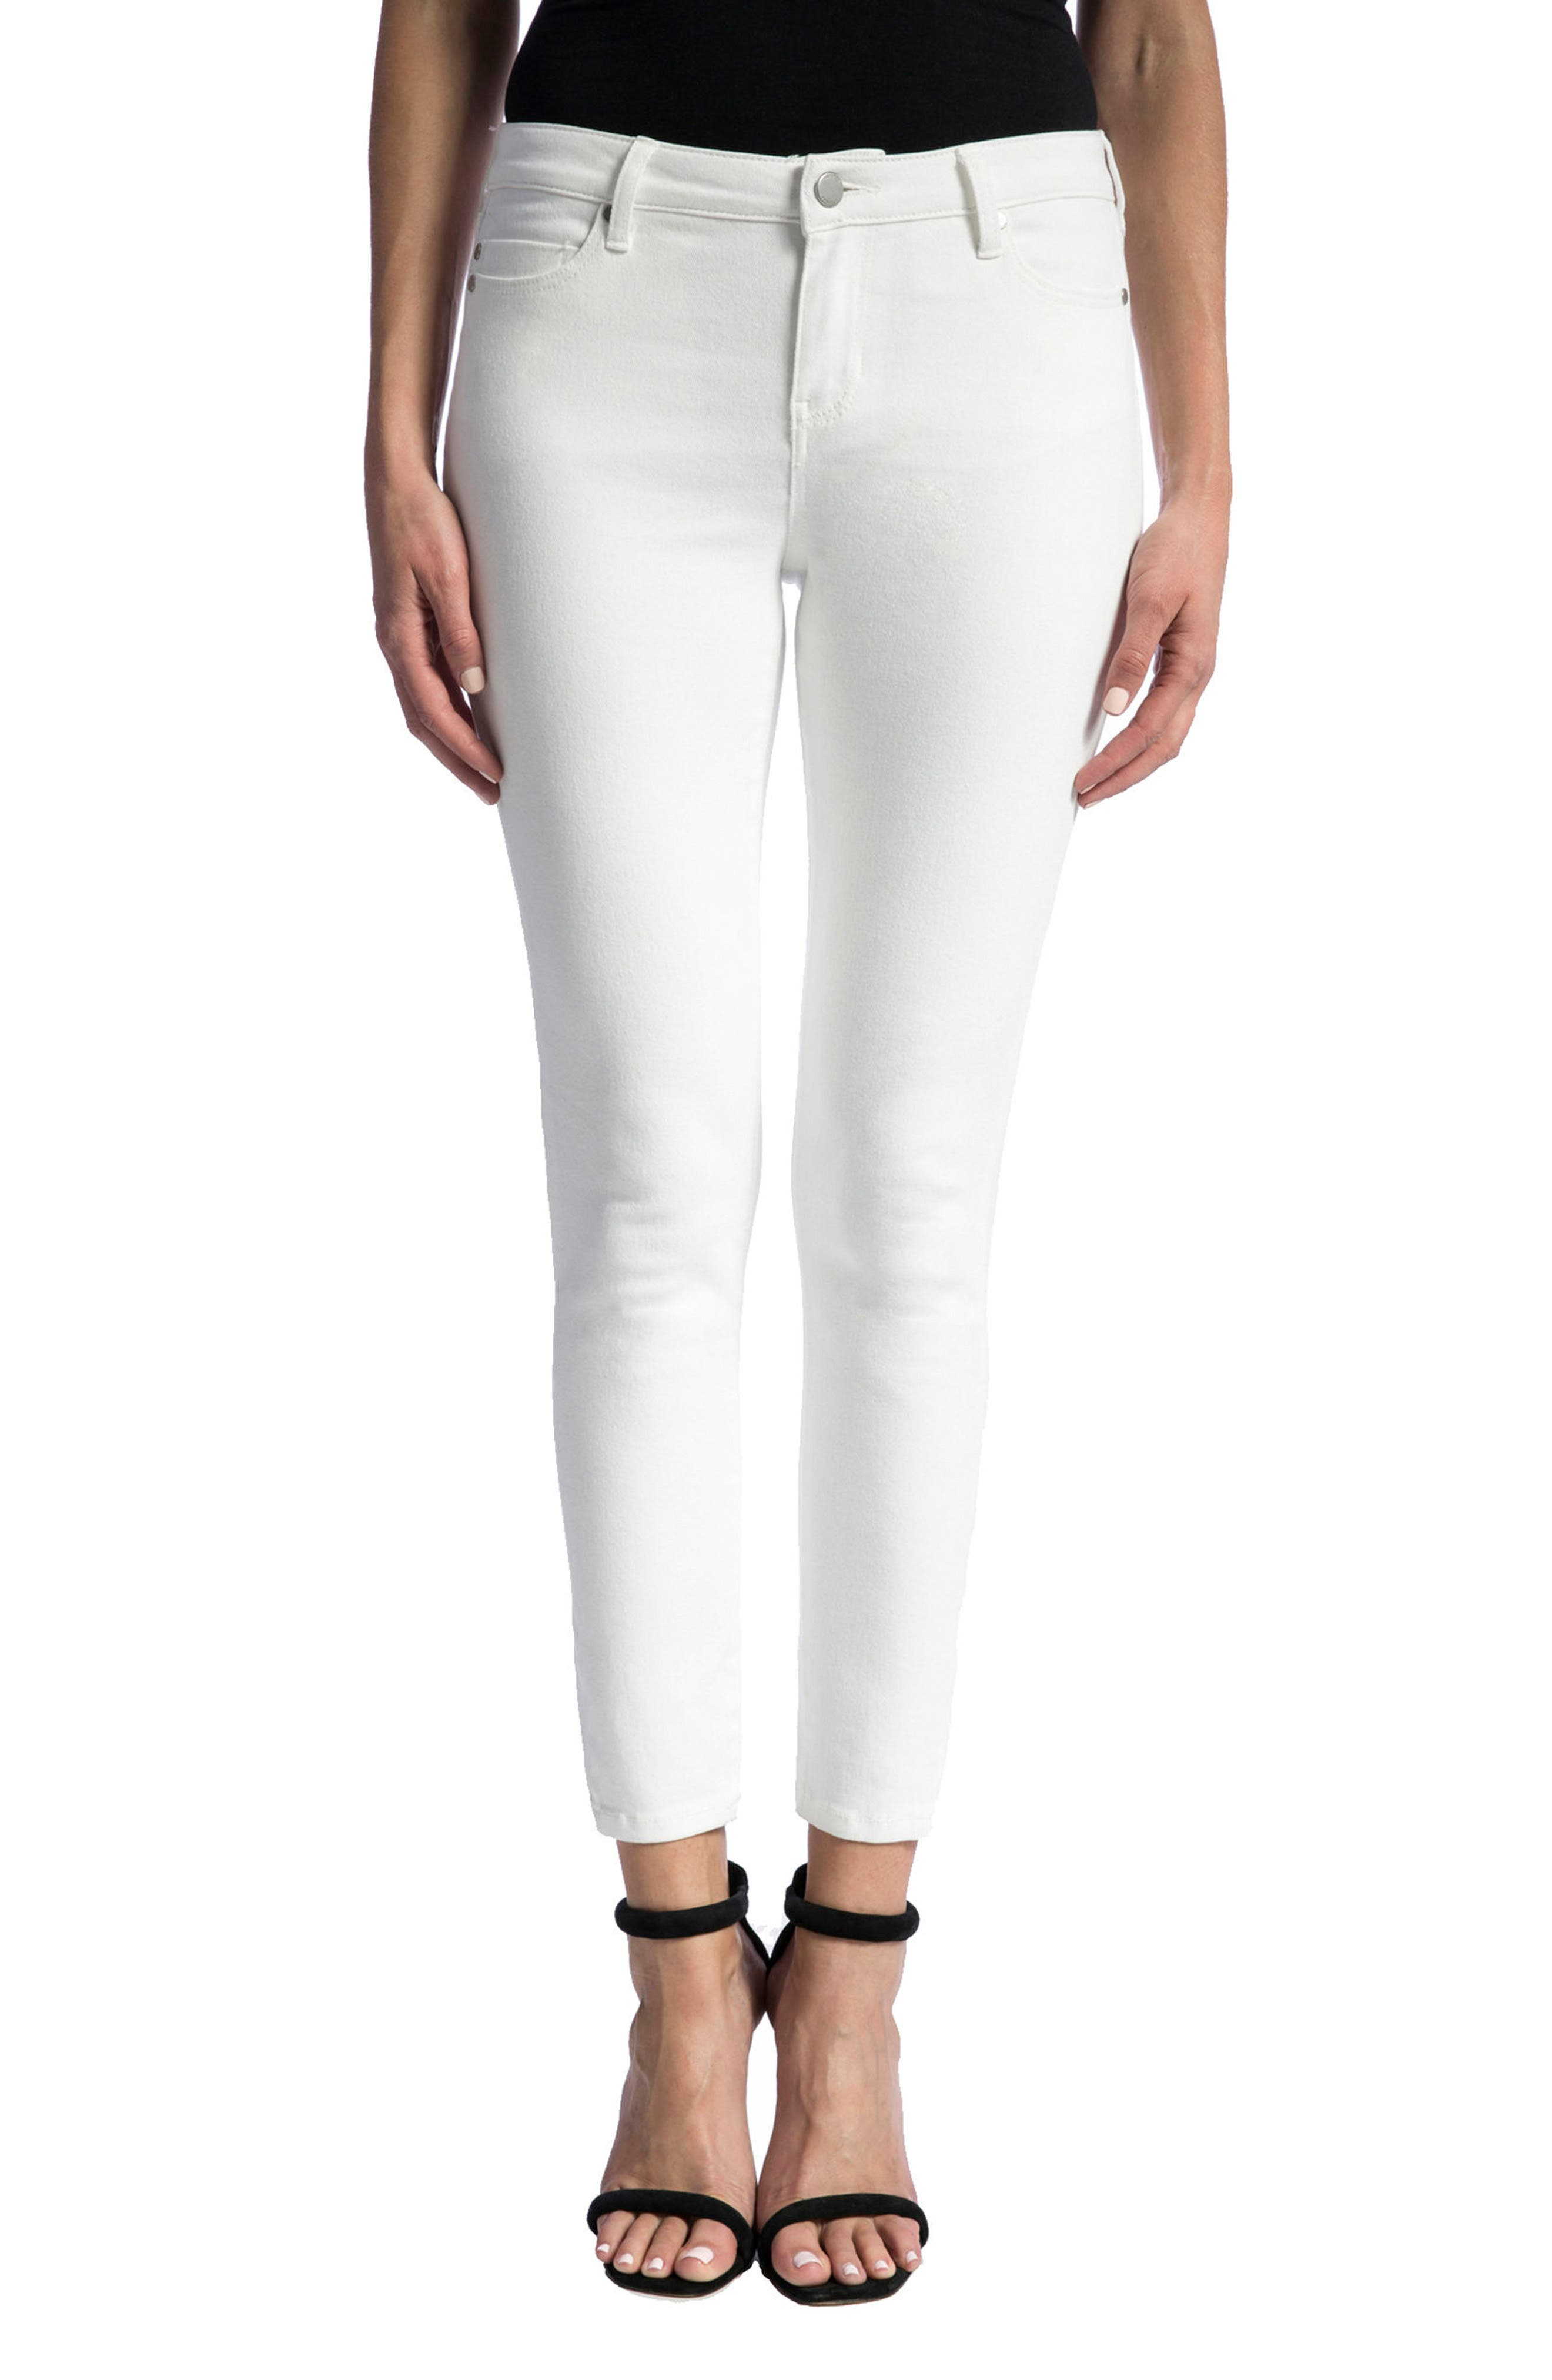 Alternate Image 1 Selected - Liverpool Jeans Company Penny Ankle Skinny Jeans (Regular & Petite)